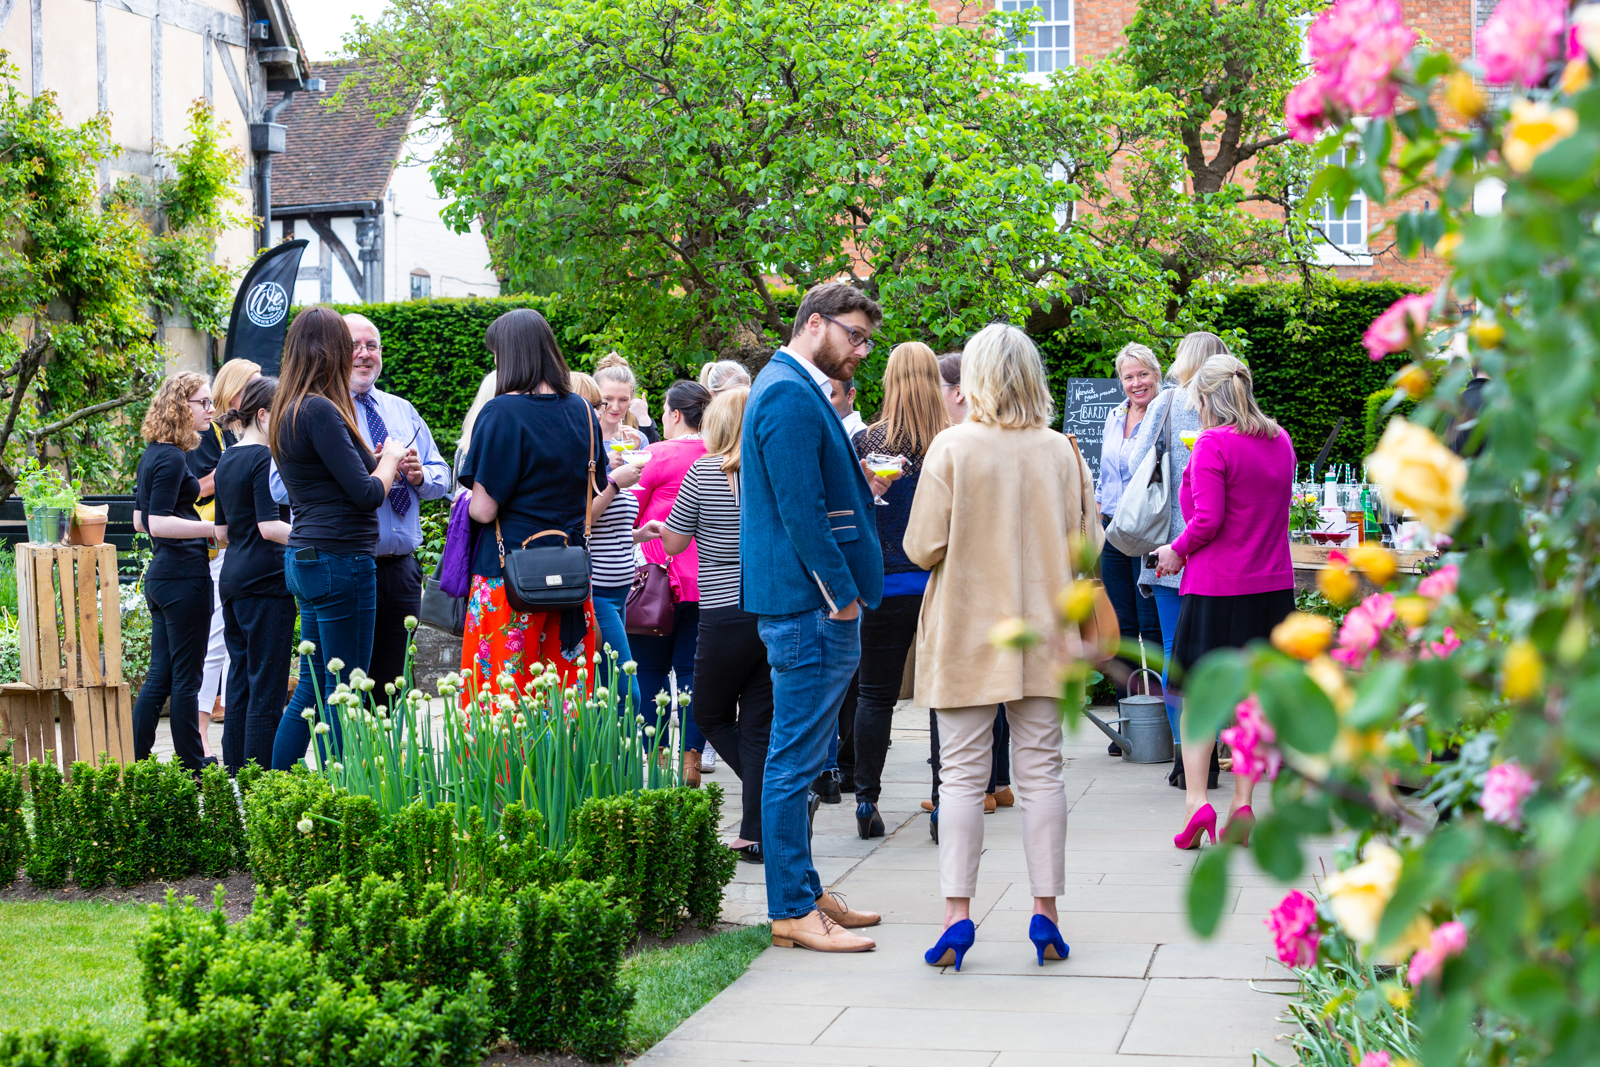 People enjoying cocktails in gardens of Shakespeare's Birthplace.